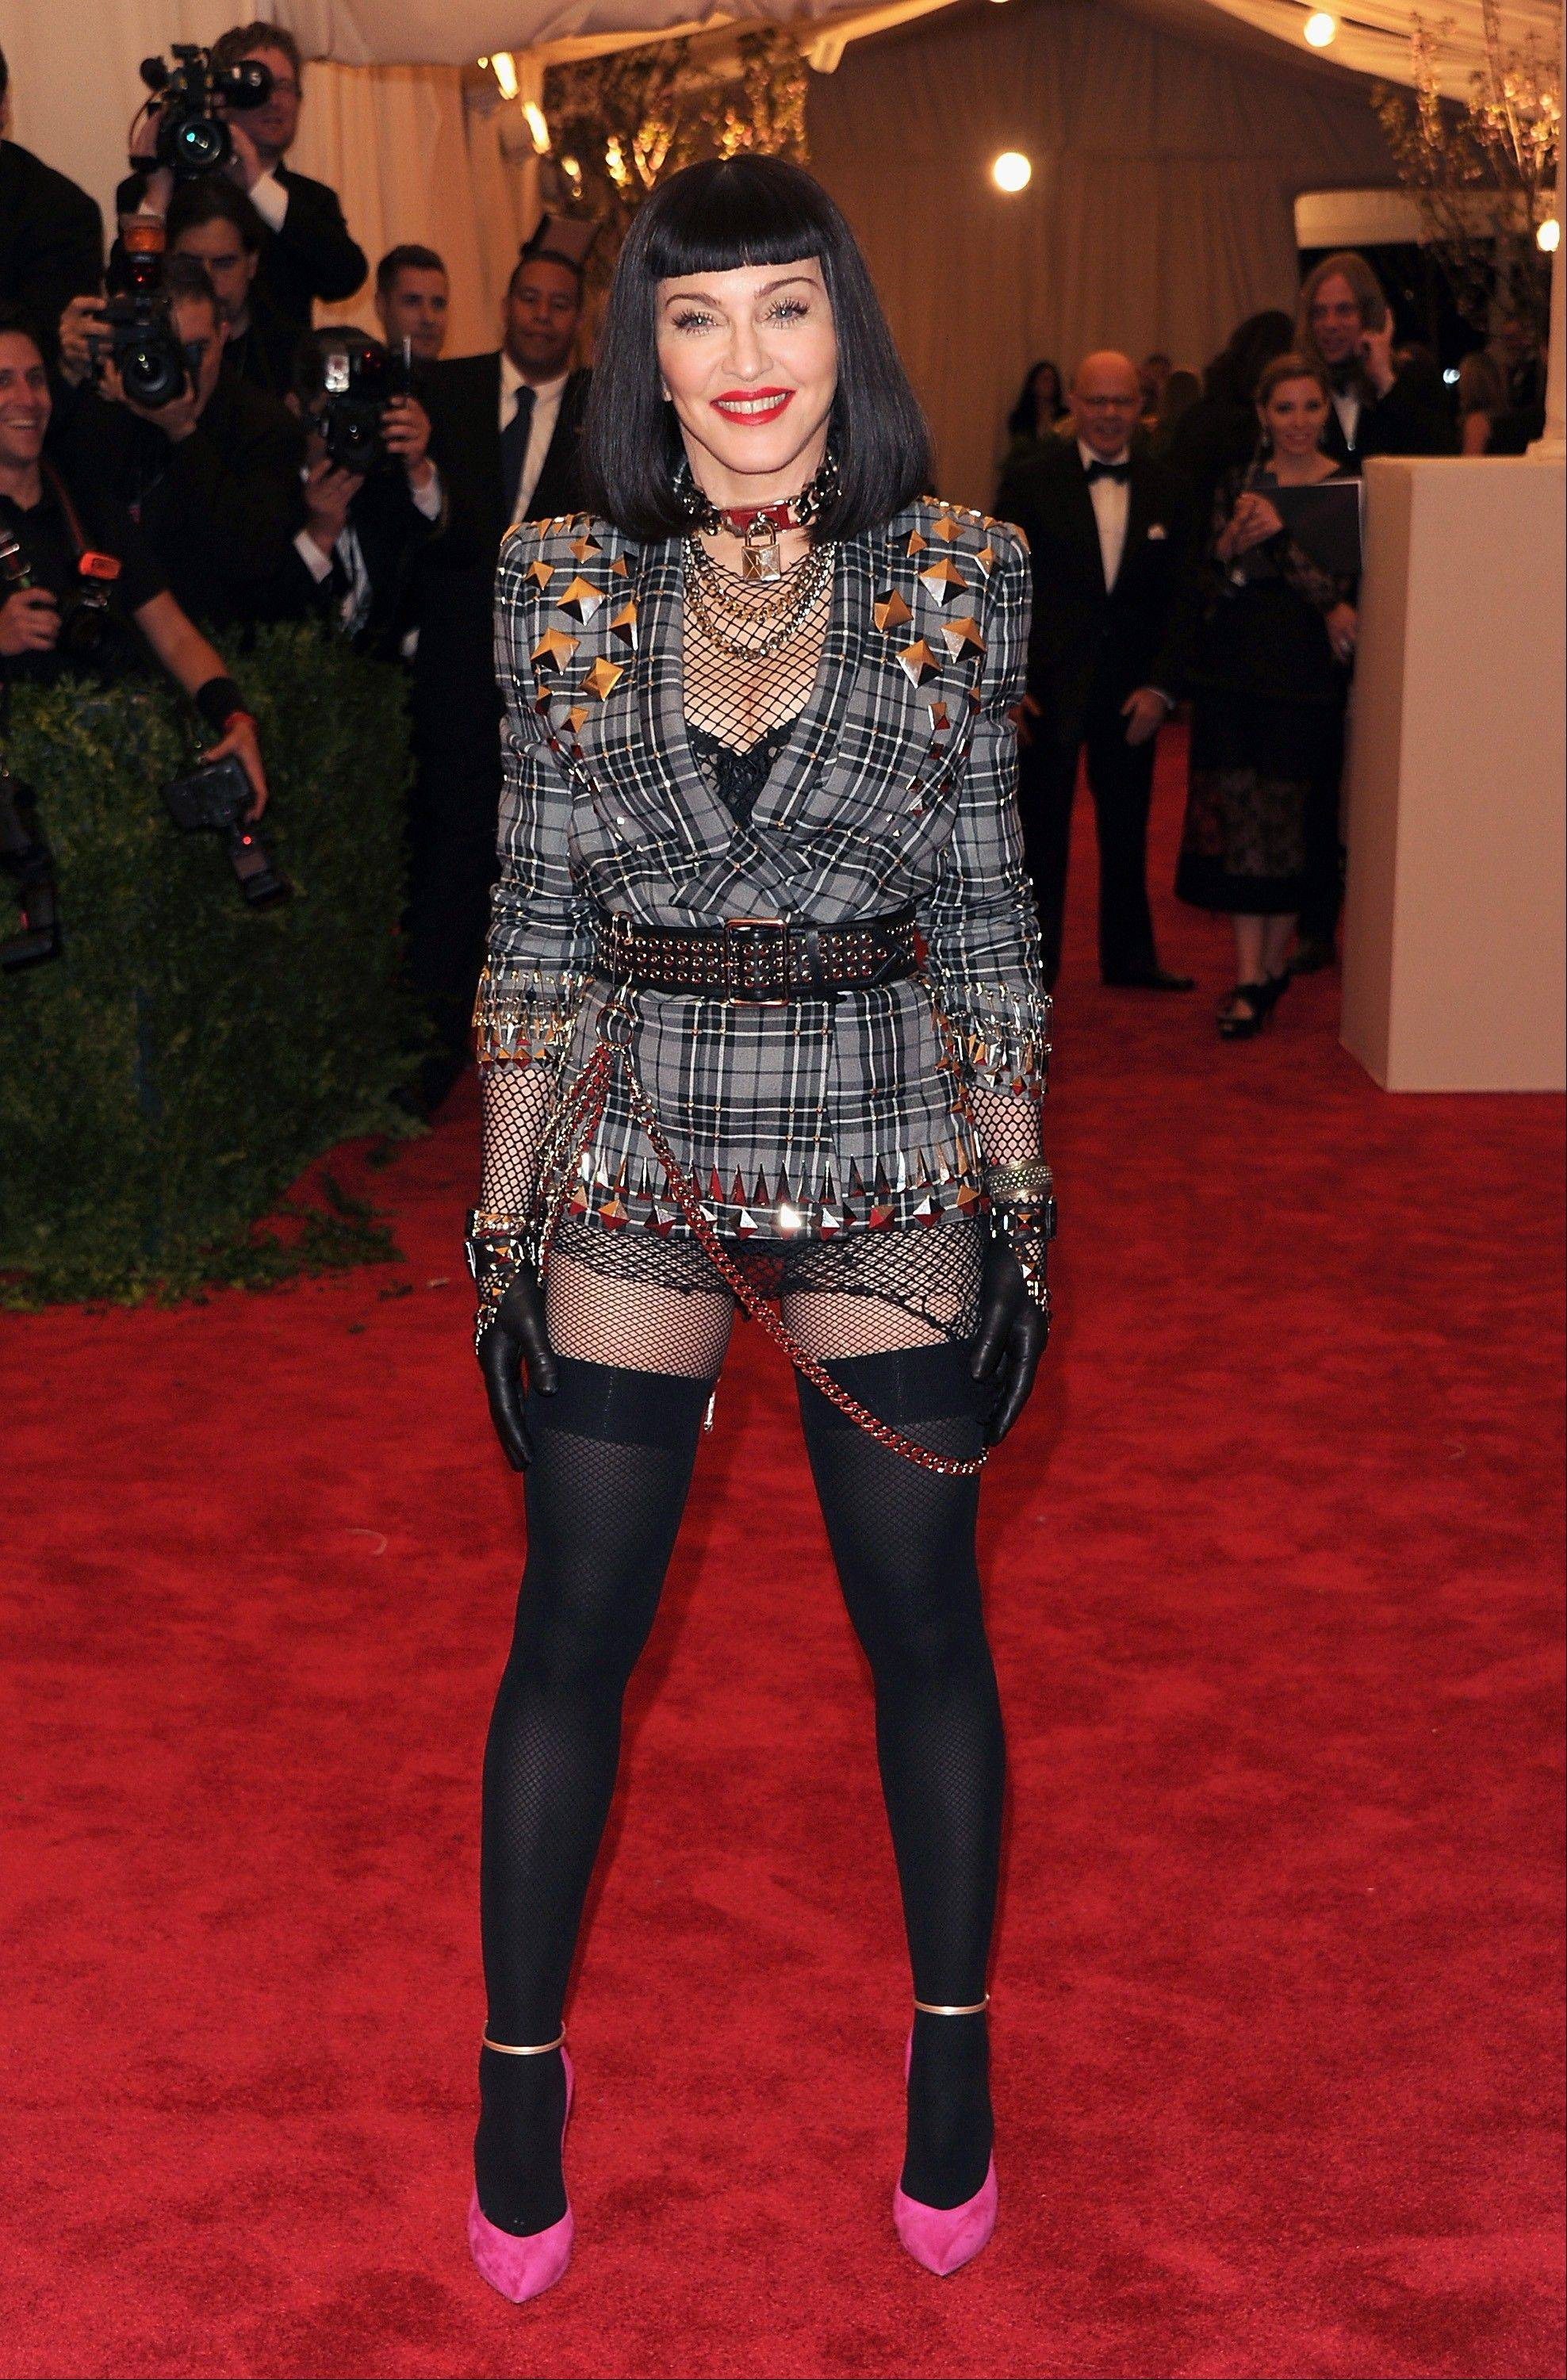 "This May 6, 2013 file photo shows Madonna at The Metropolitan Museum of Art Costume Institute gala benefit, ""Punk: Chaos to Couture"" in New York. The Metropolitan Museum of Art hosted a new Costume Institute exhibit, ""Punk: Chaos to Culture,"" celebrating a movement that embraced anarchy in the 1970s."